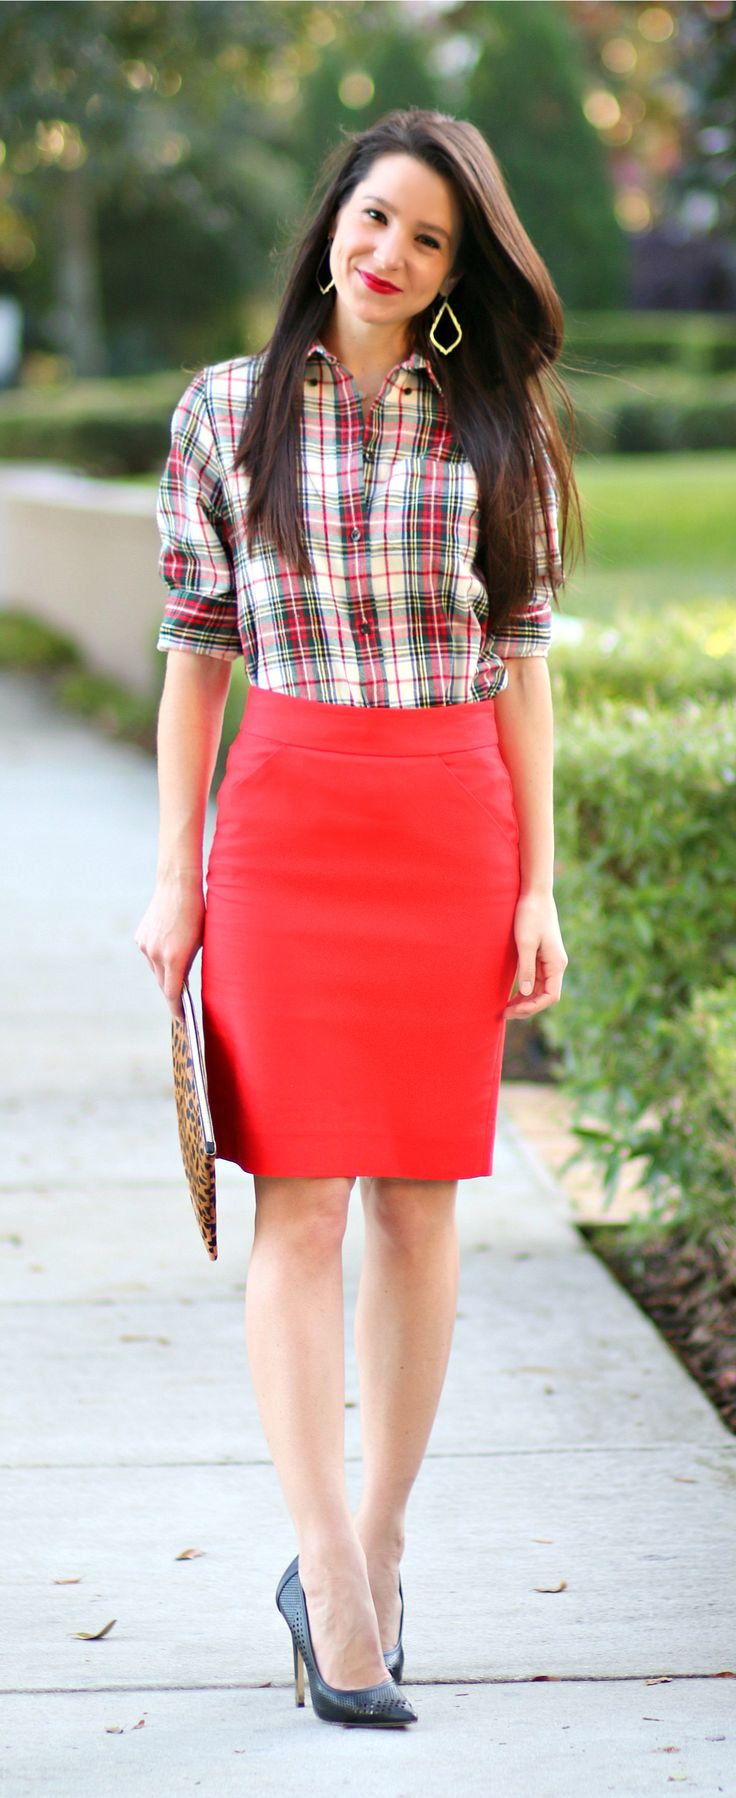 How to wear a red pencil skirt to work in December! Love this festive holiday look. J.Crew Factory red pencil skirt with a Scotch plaid flannel shirt, leopard clutch, and black perforated pumps.